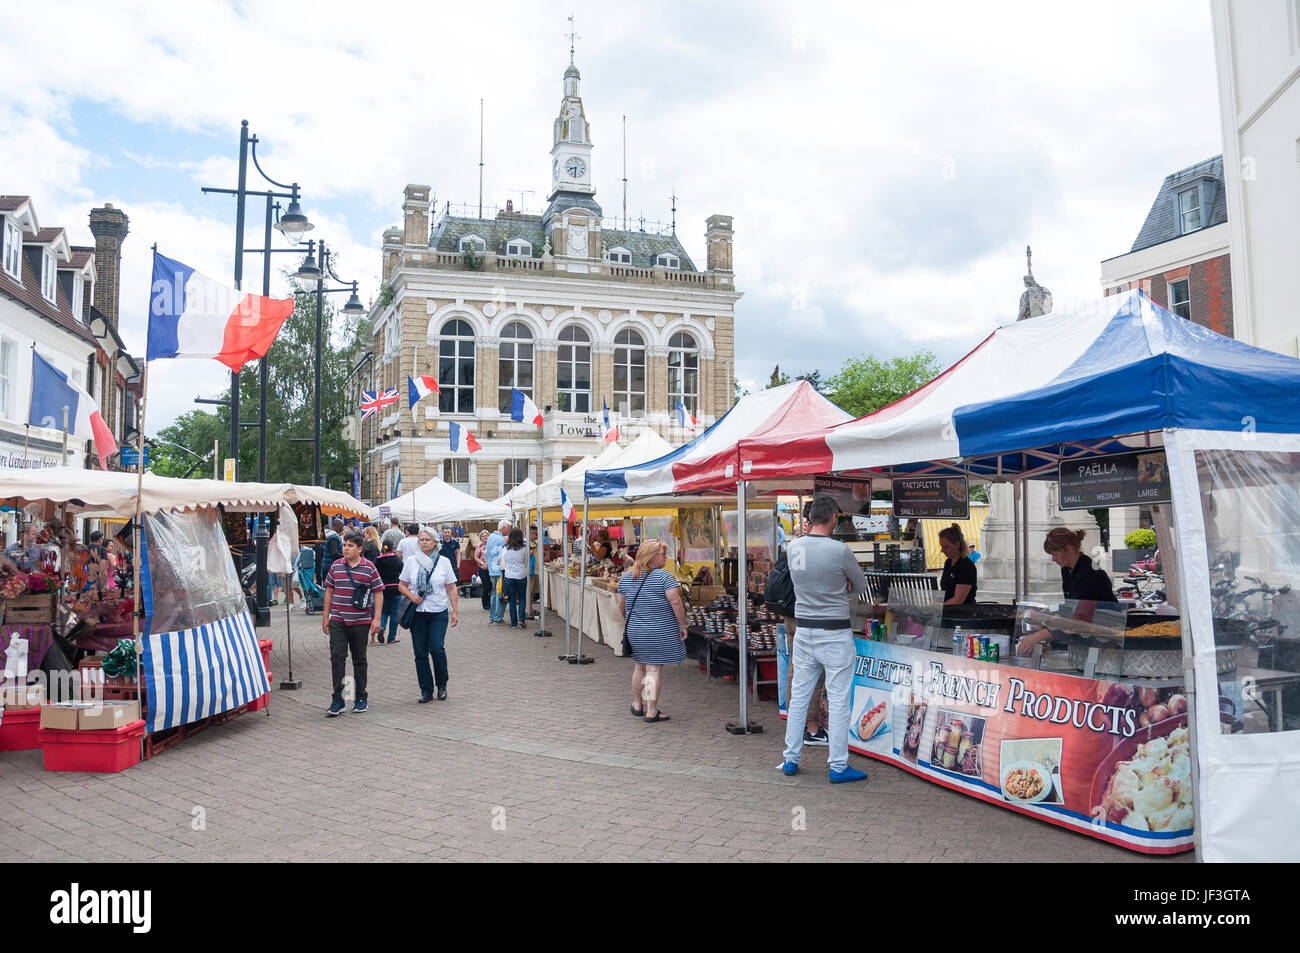 French outdoor produce Market in Market Square, Staines-upon-Thames, Surrey, England, United Kingdom - Stock Image